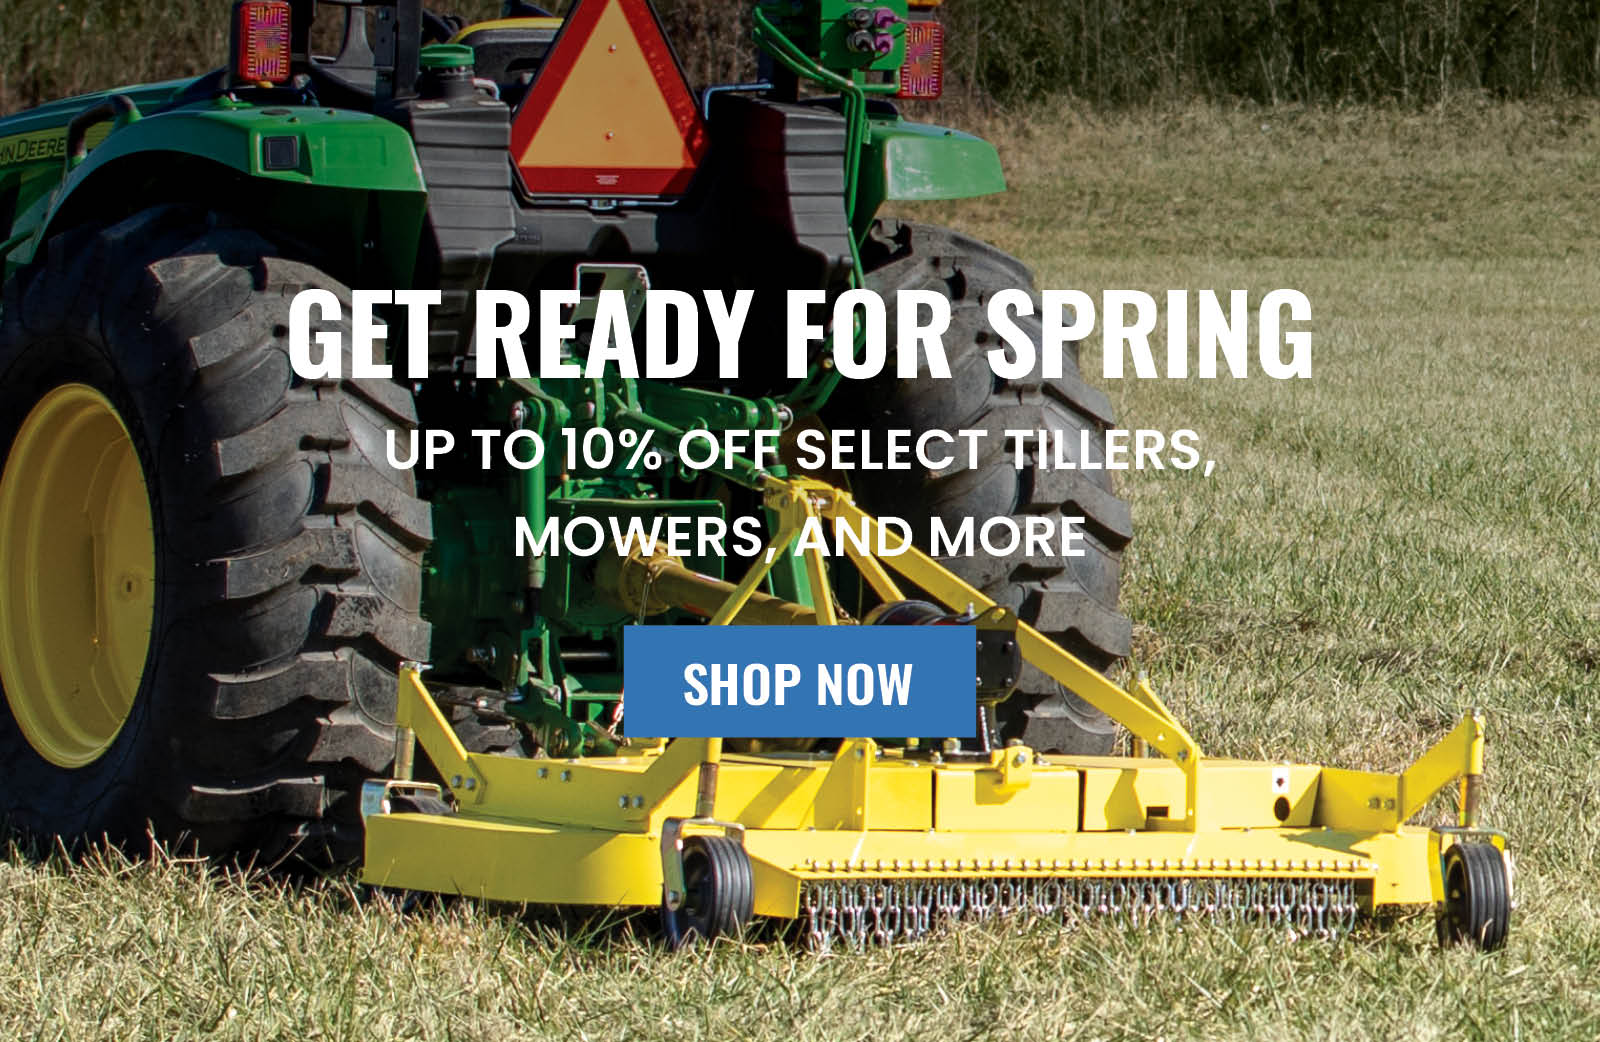 Get Ready For Spring Sale - Save Up To 10% OFF Select Skid Steer and Tractor Attachments